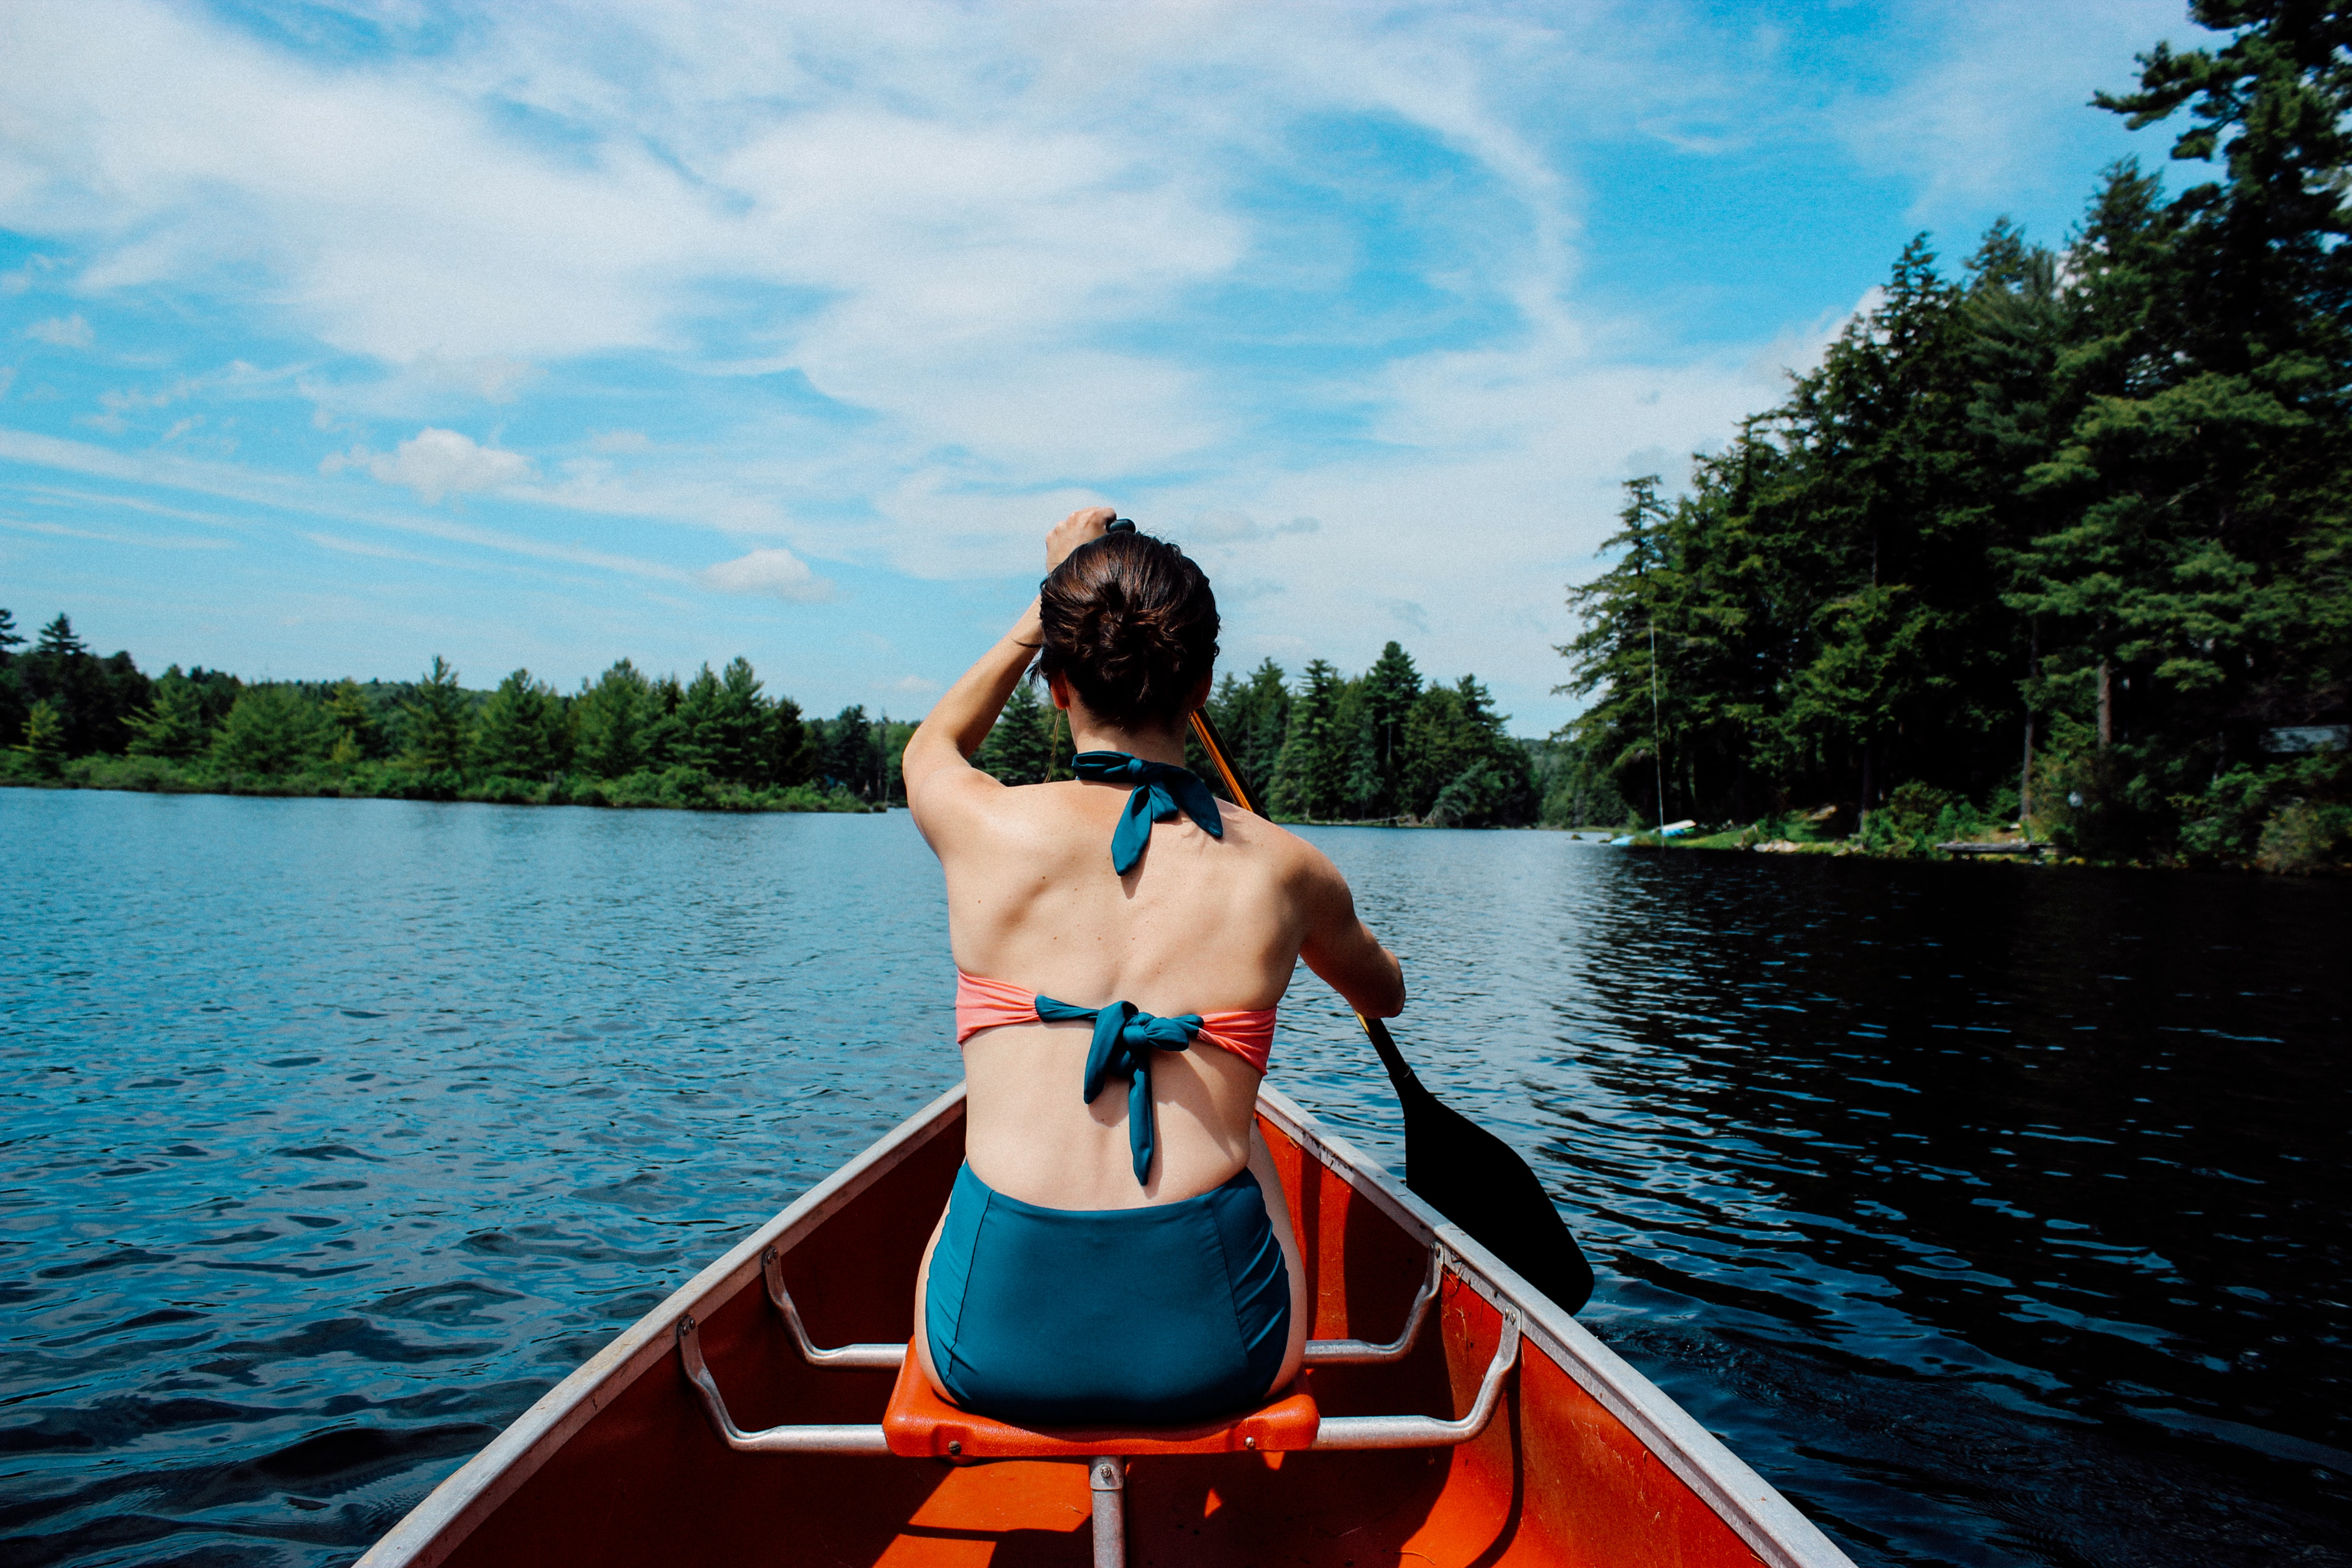 woman riding on boat while paddling under blue sky during daytime